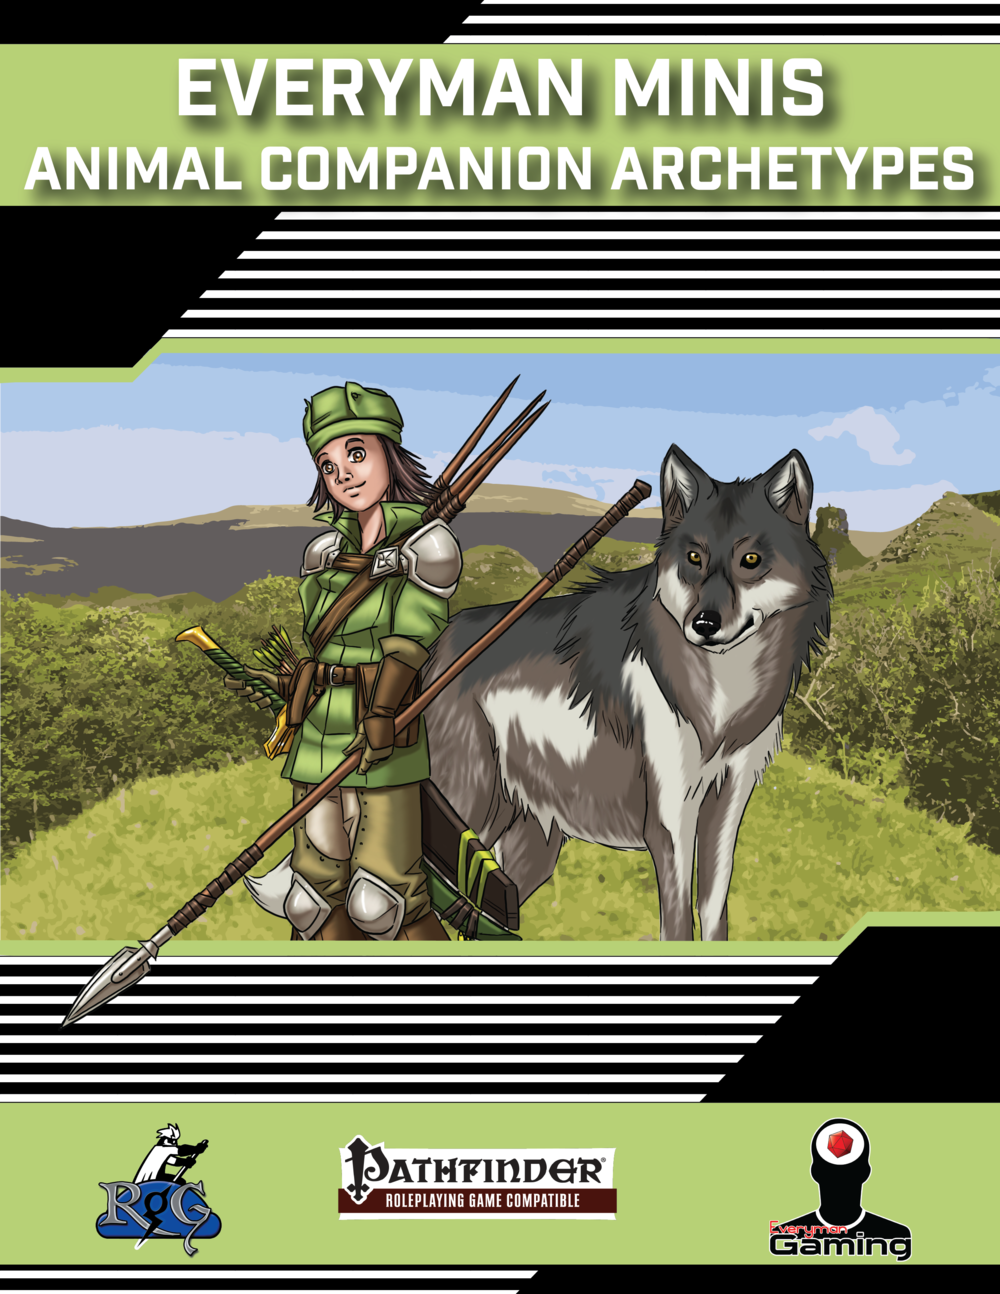 EMM 67 Animal Companion Archetypes.png